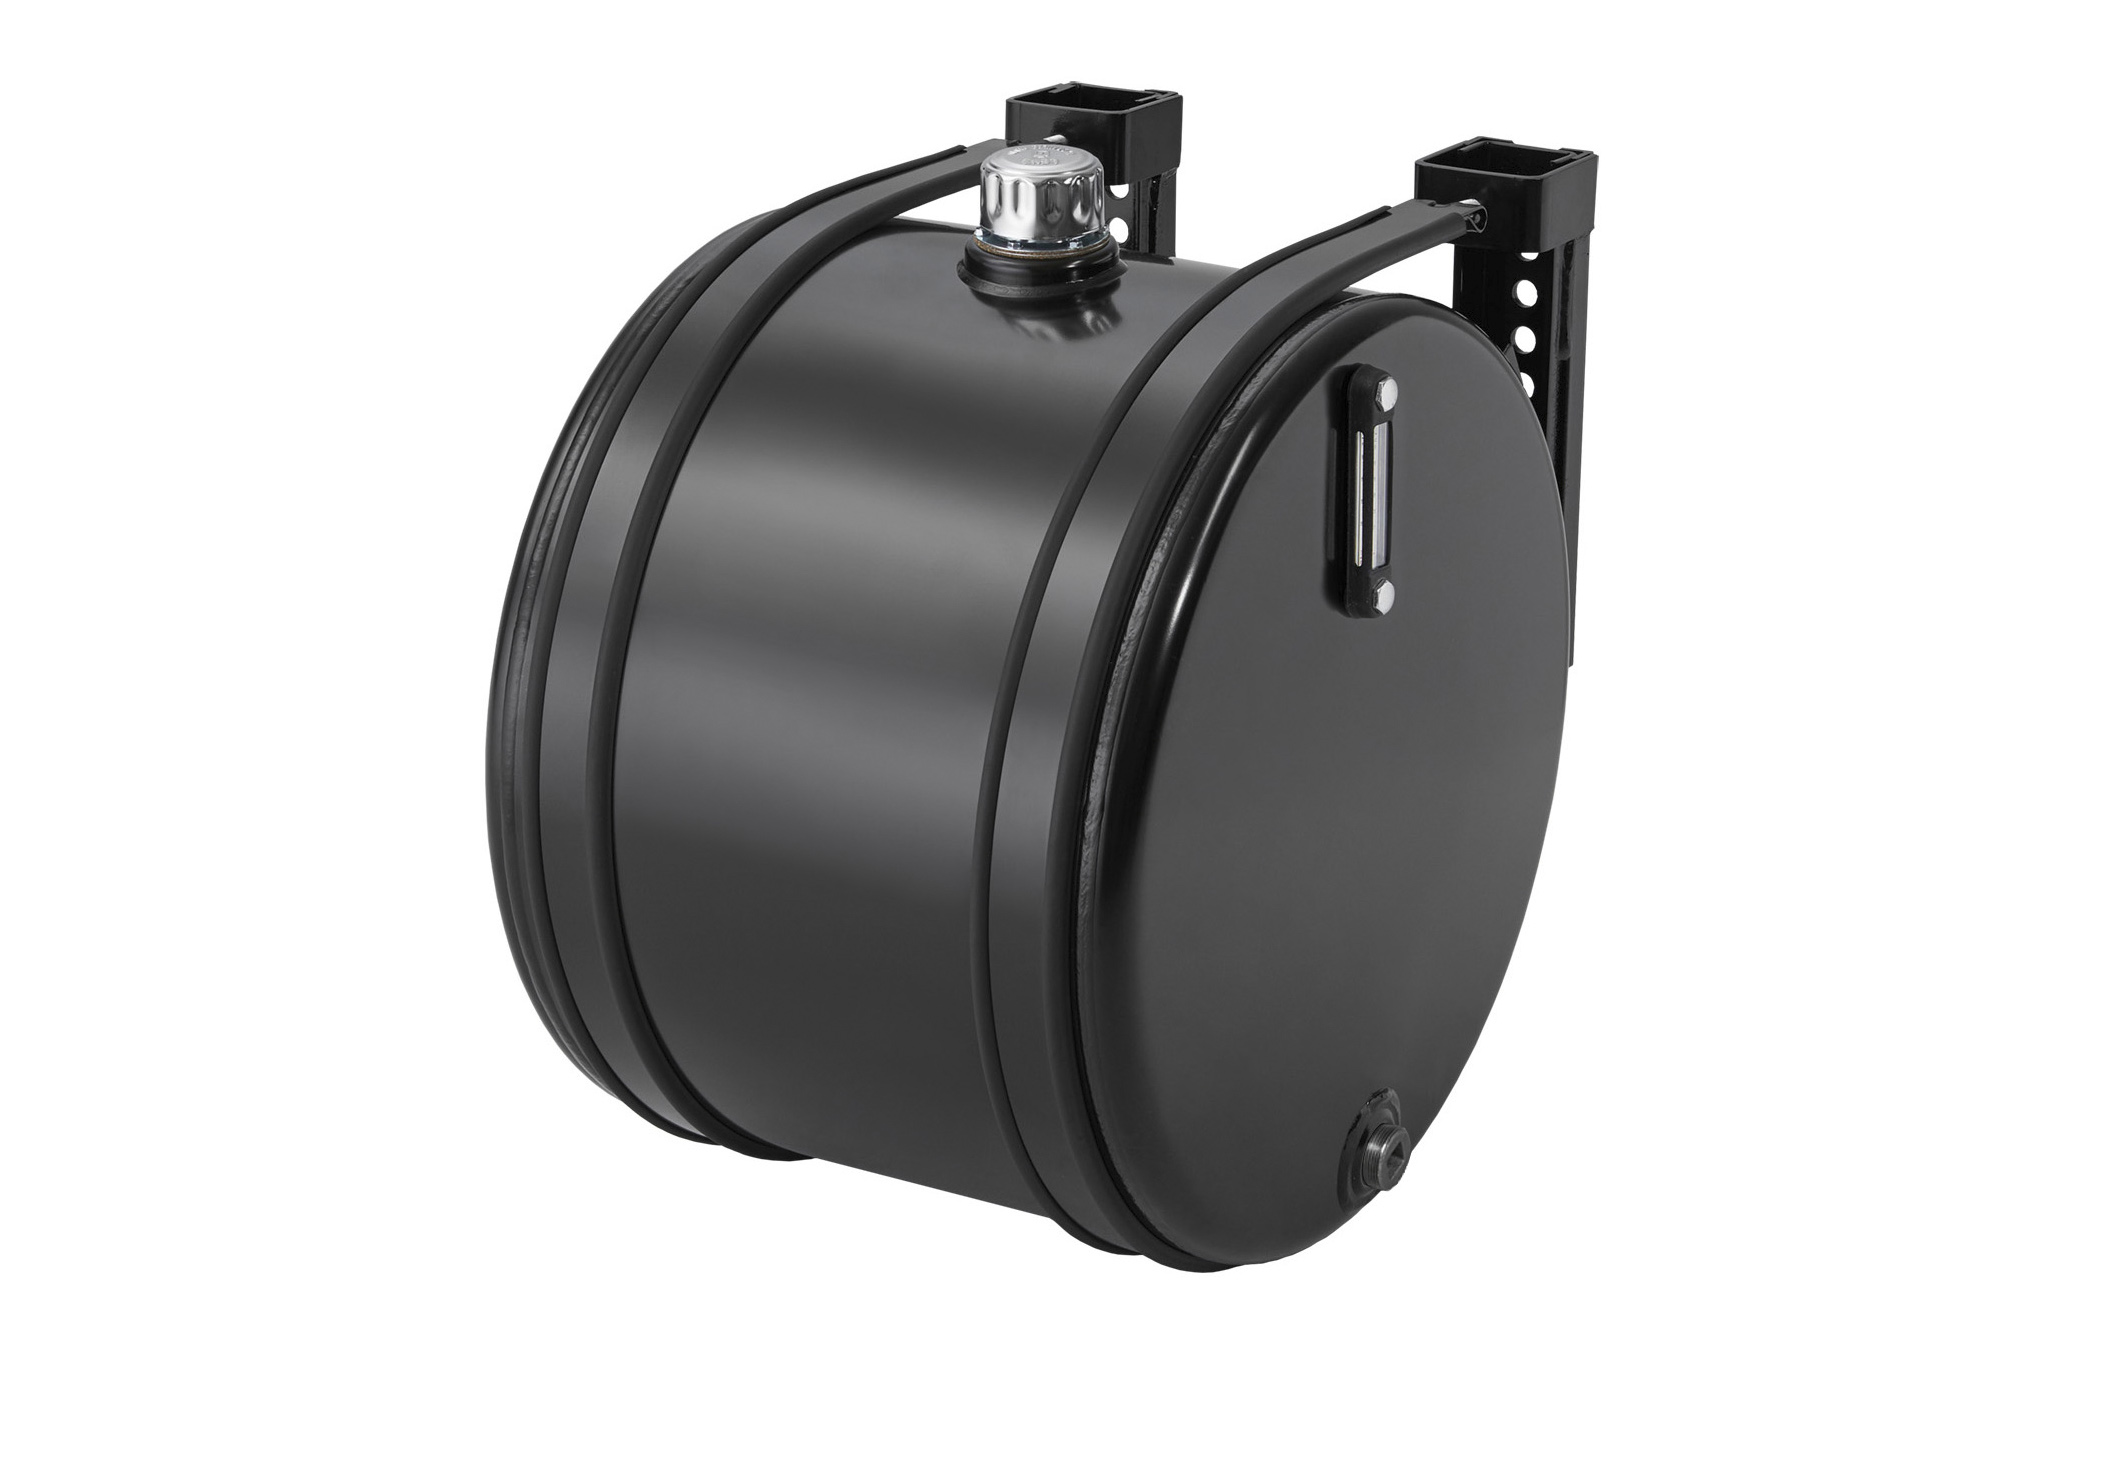 Steel Saddlemount - 35 Gallon Hydraulic Tanks